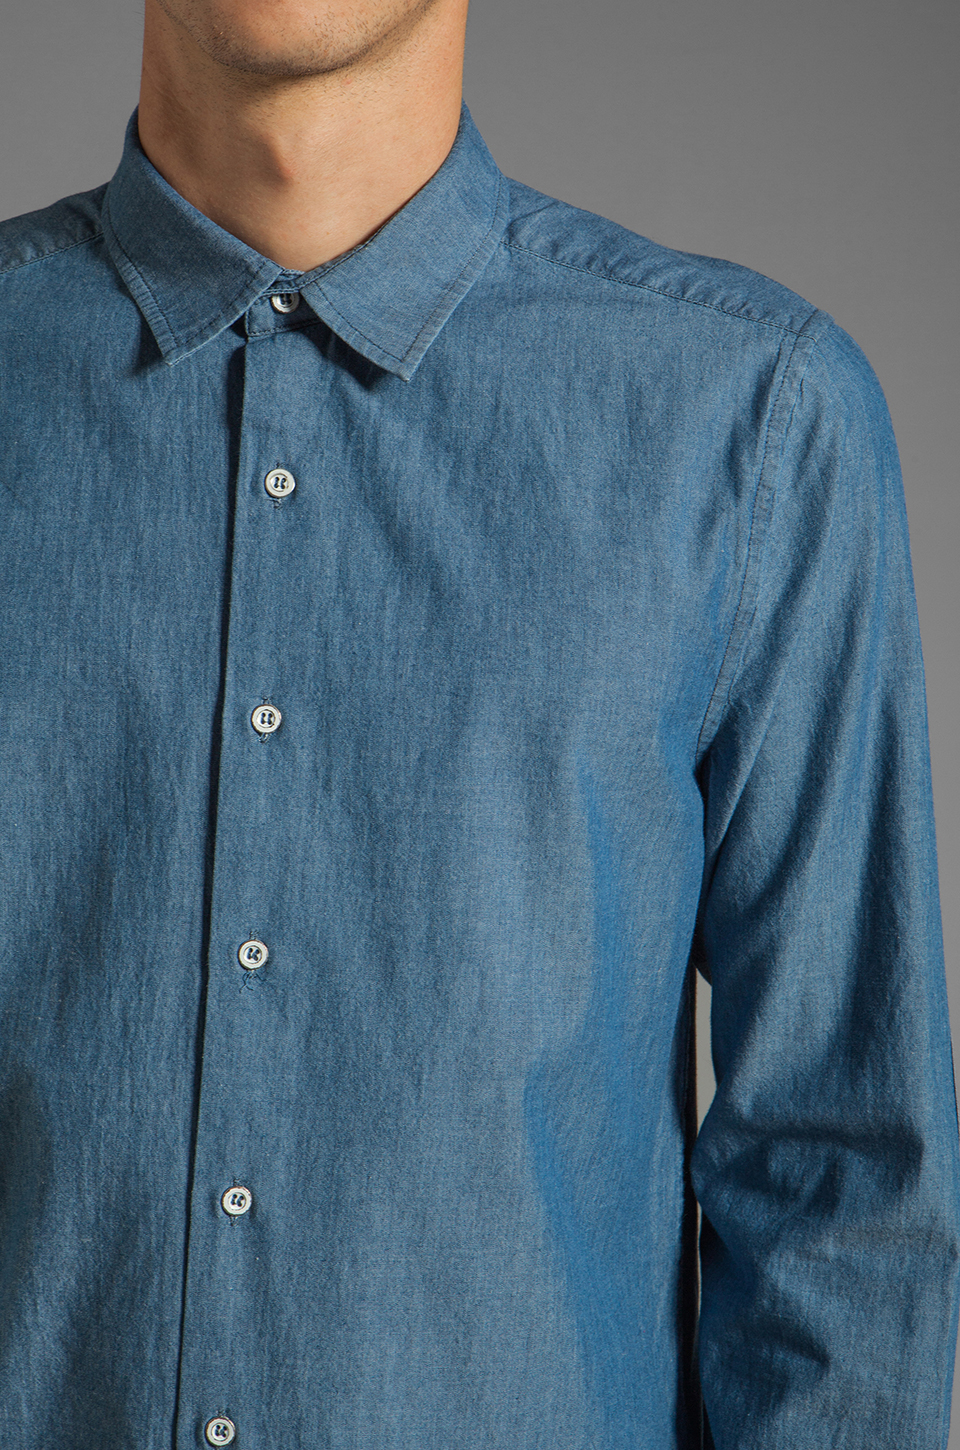 TOVAR Nathan Button Up in Chambray